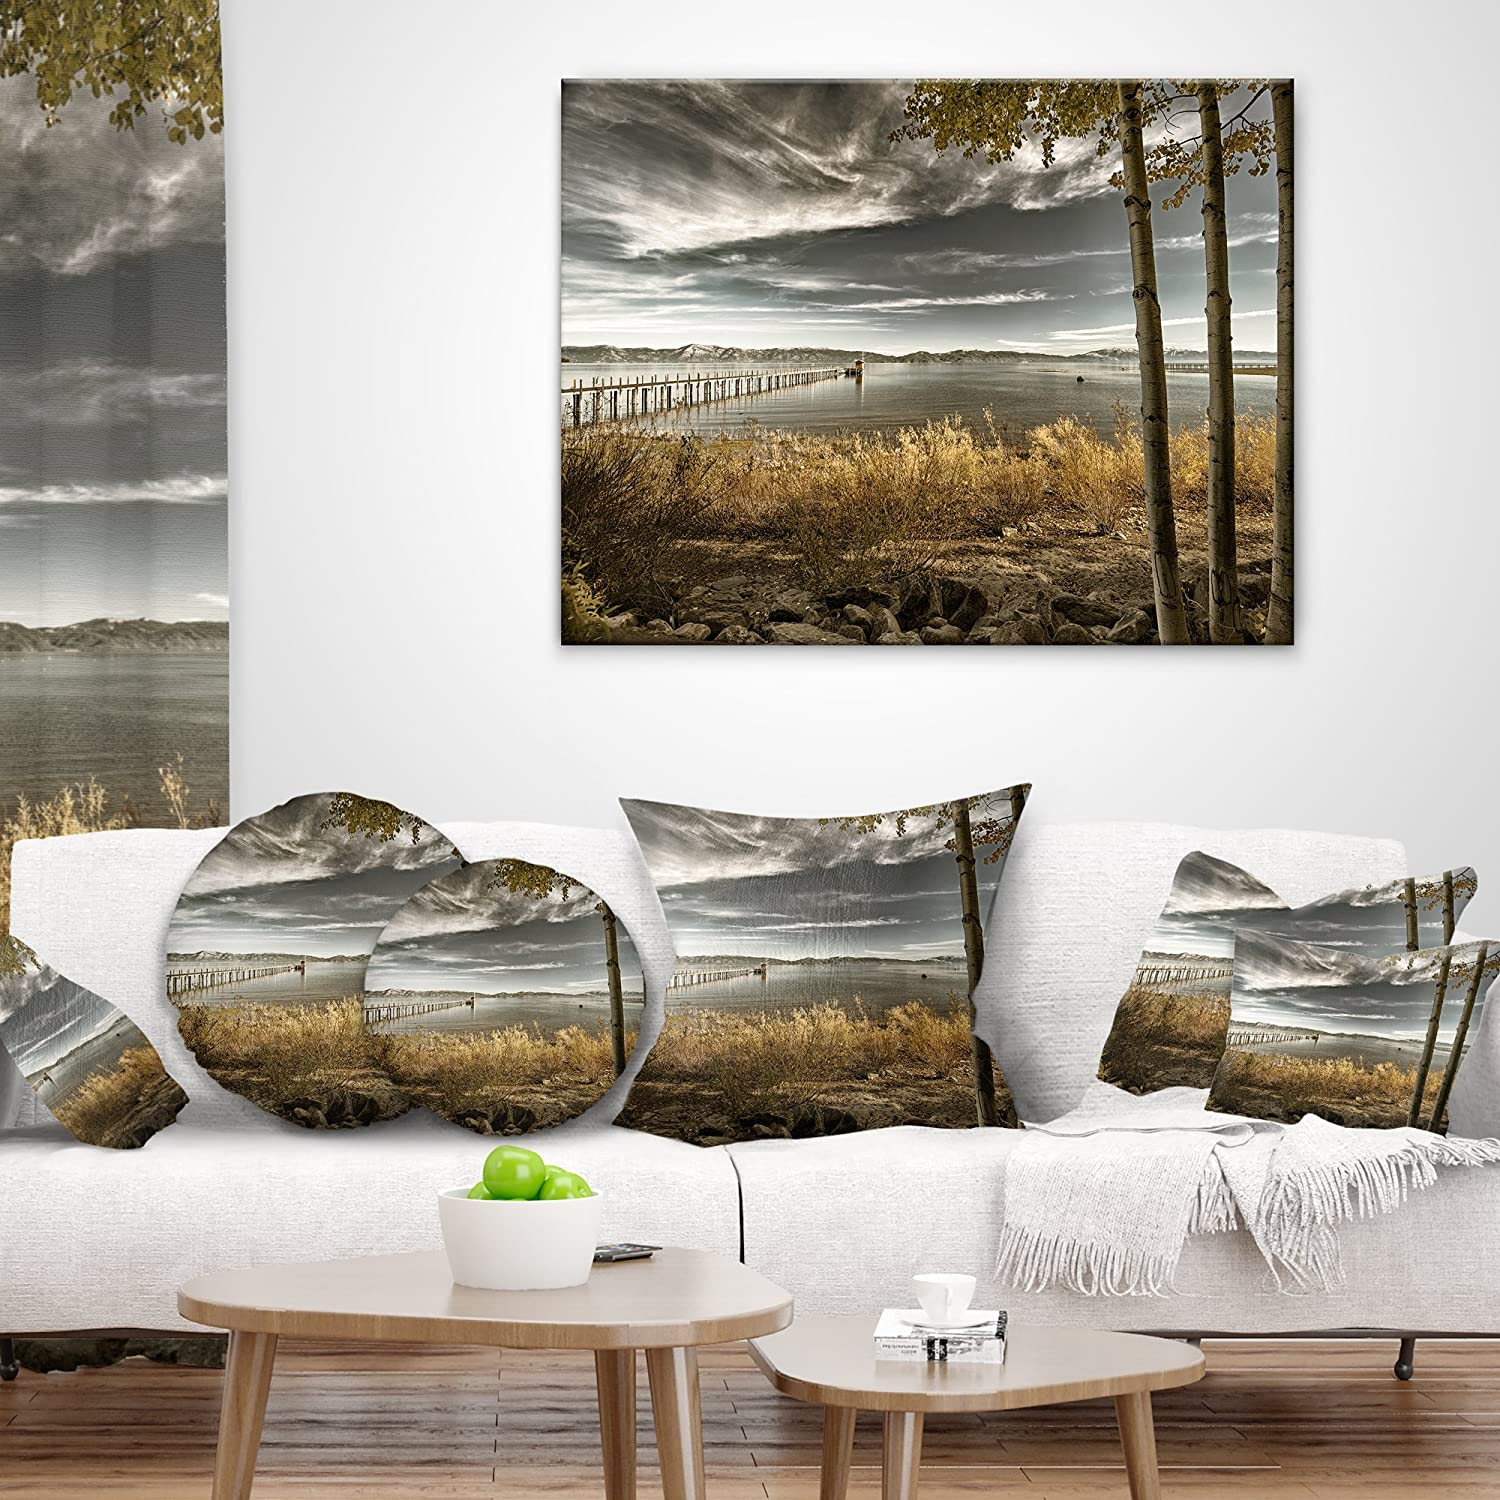 Sofa Throw Pillow 18 in Designart CU8278-18-18 Pier in Brown Lake Landscape Photo Cushion Cover for Living Room in x 18 in